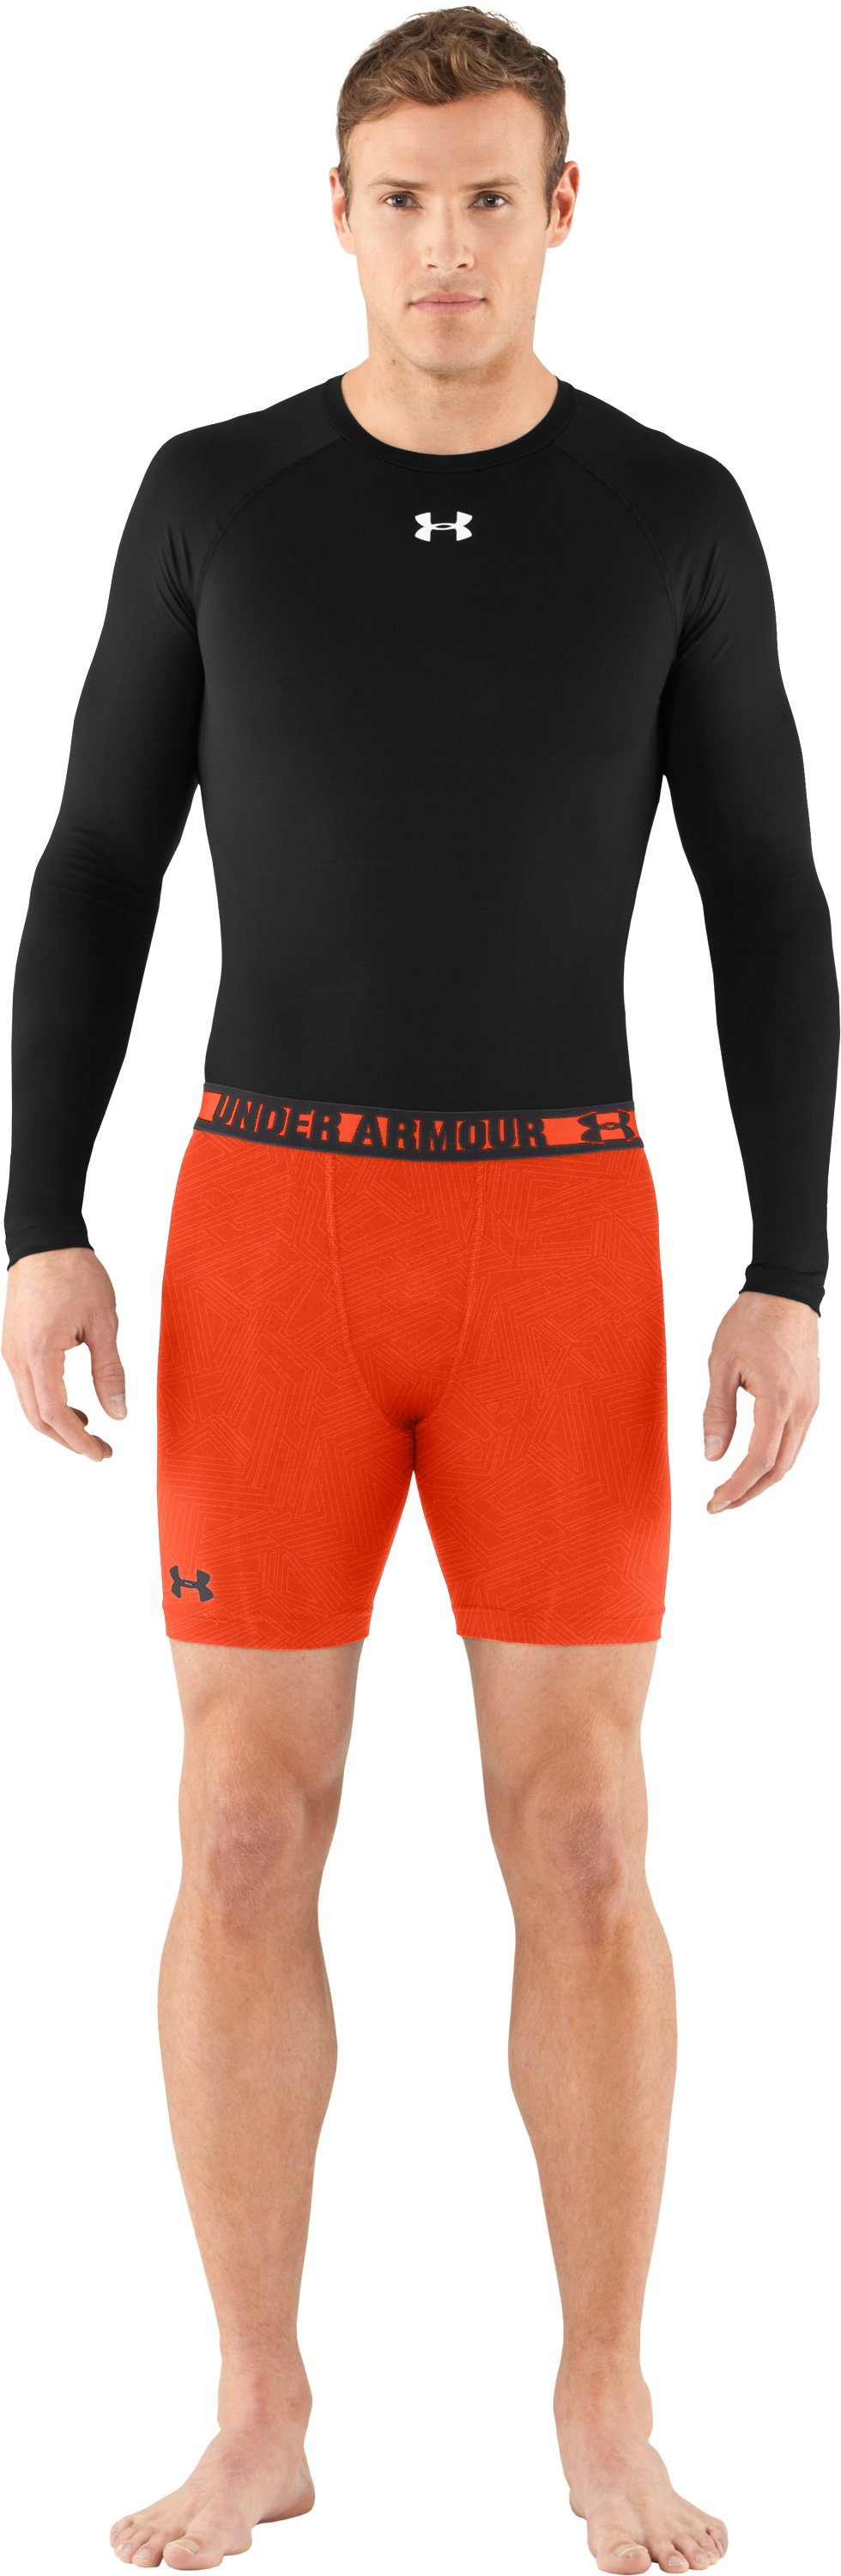 Men's HeatGear® Sonic Printed Compression Shorts, Explosive